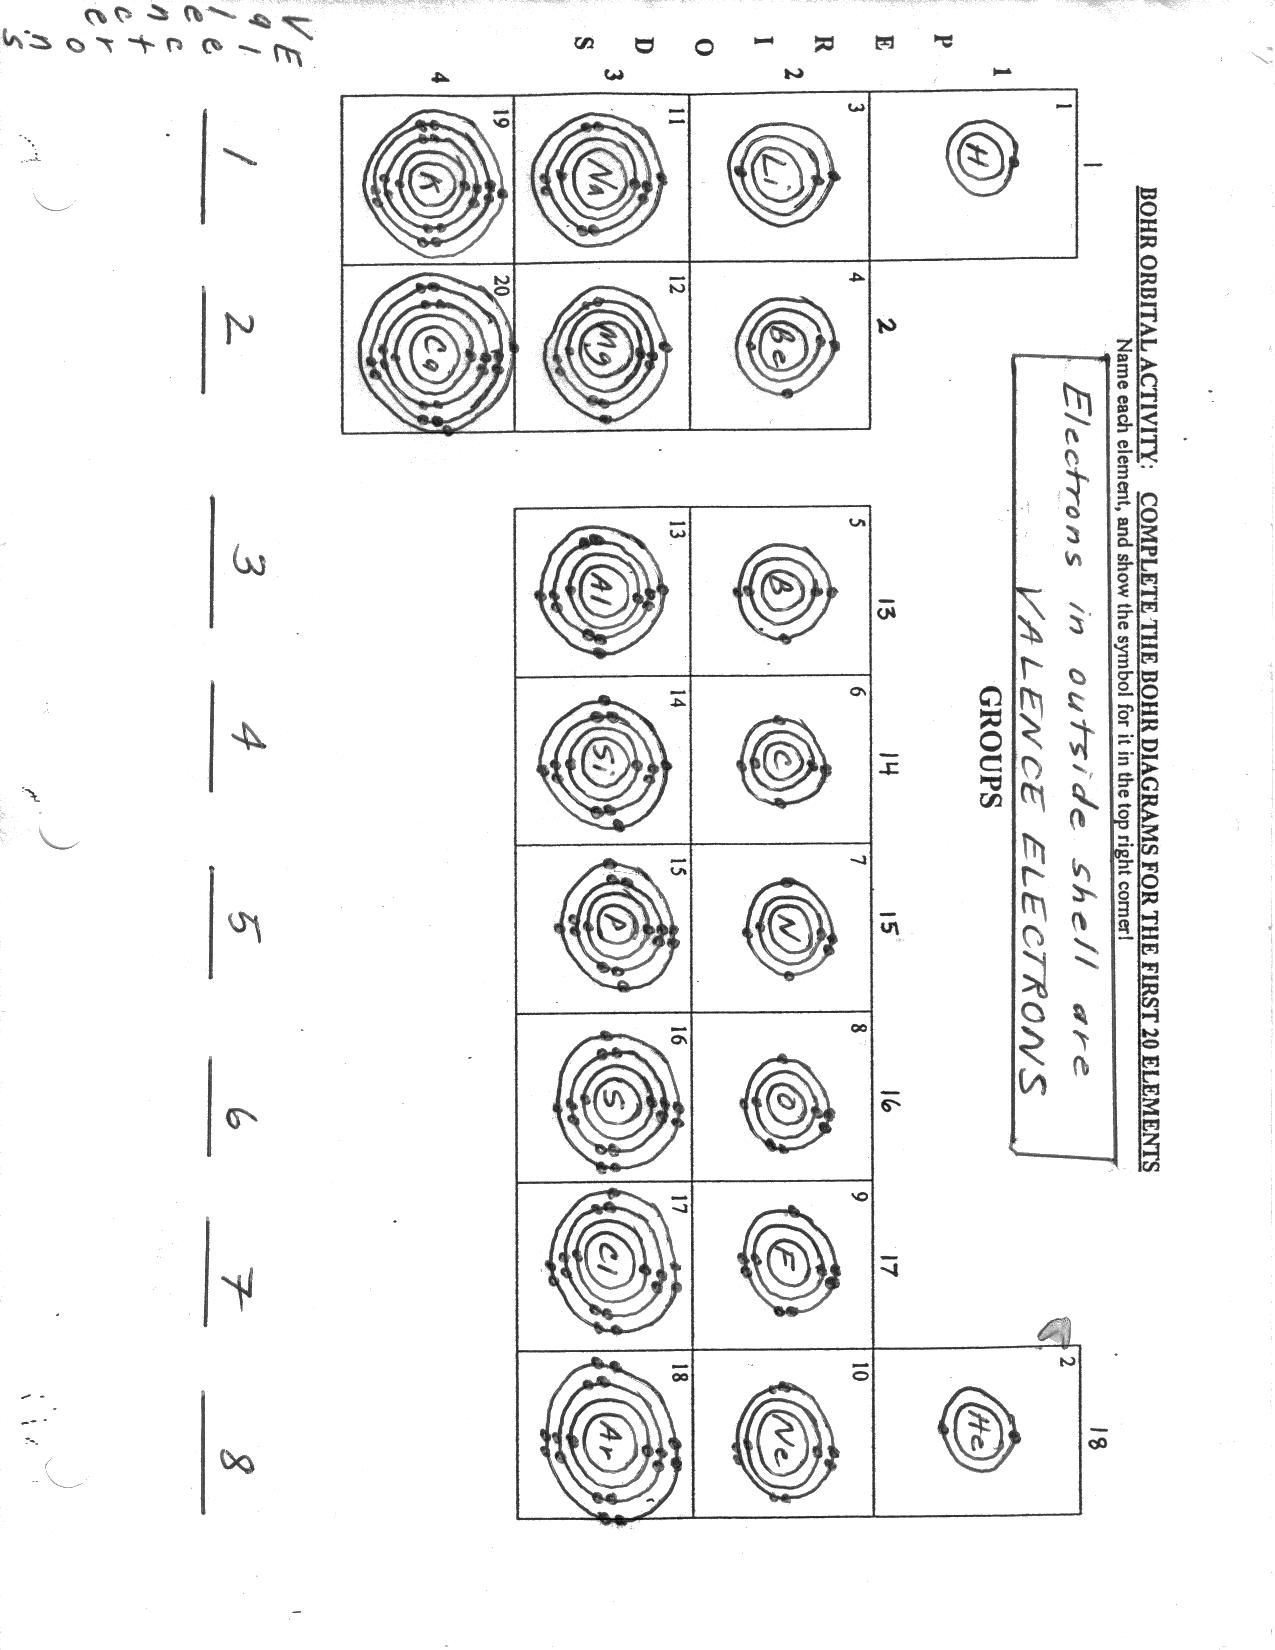 Beautiful Blank Bohr Model Worksheet   Blank Fill In For First 20 Elements .